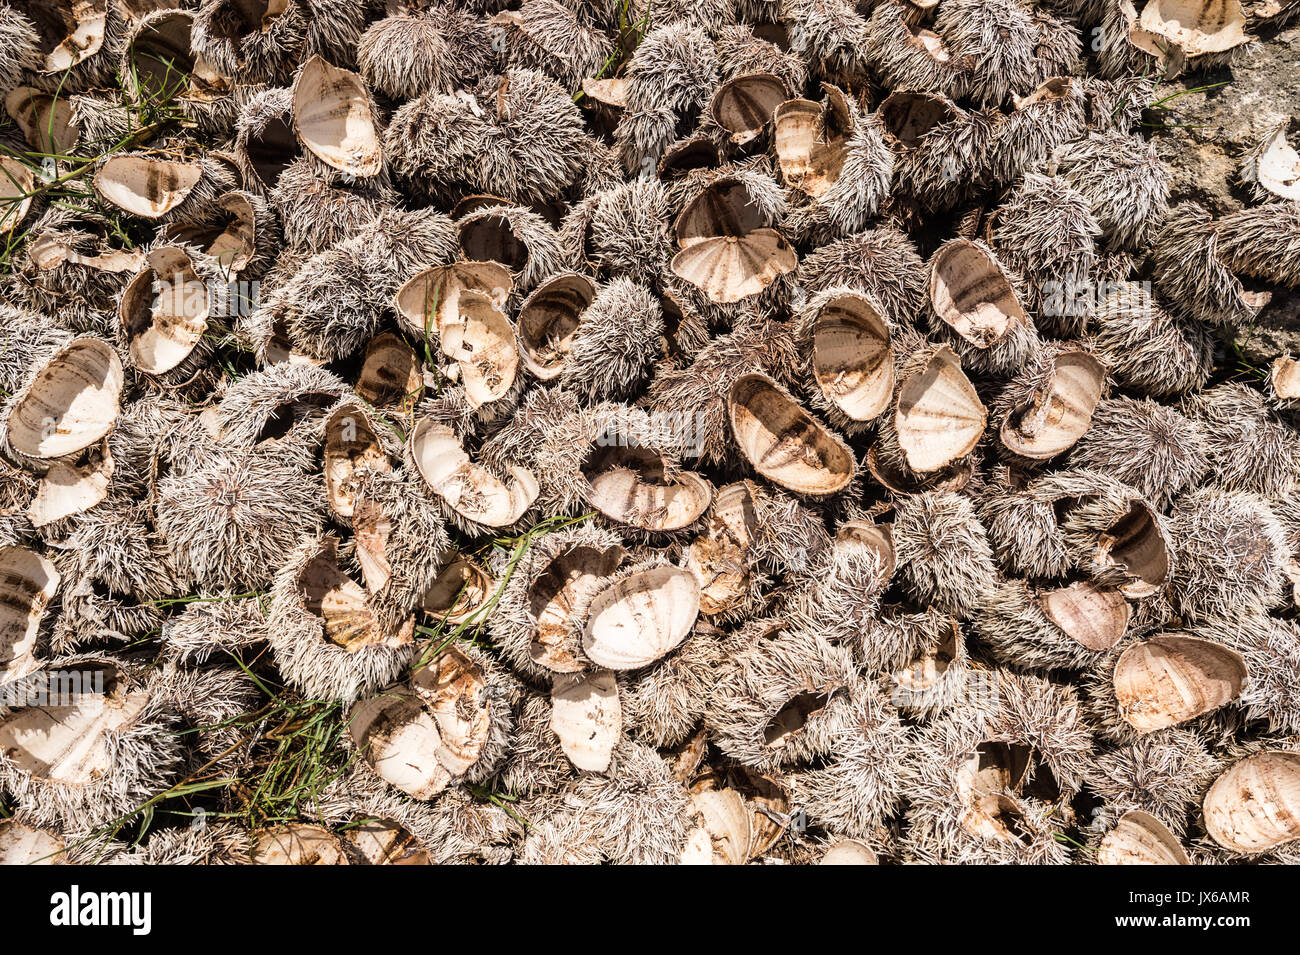 Many urchin shells left on the beach after consumption - Stock Image